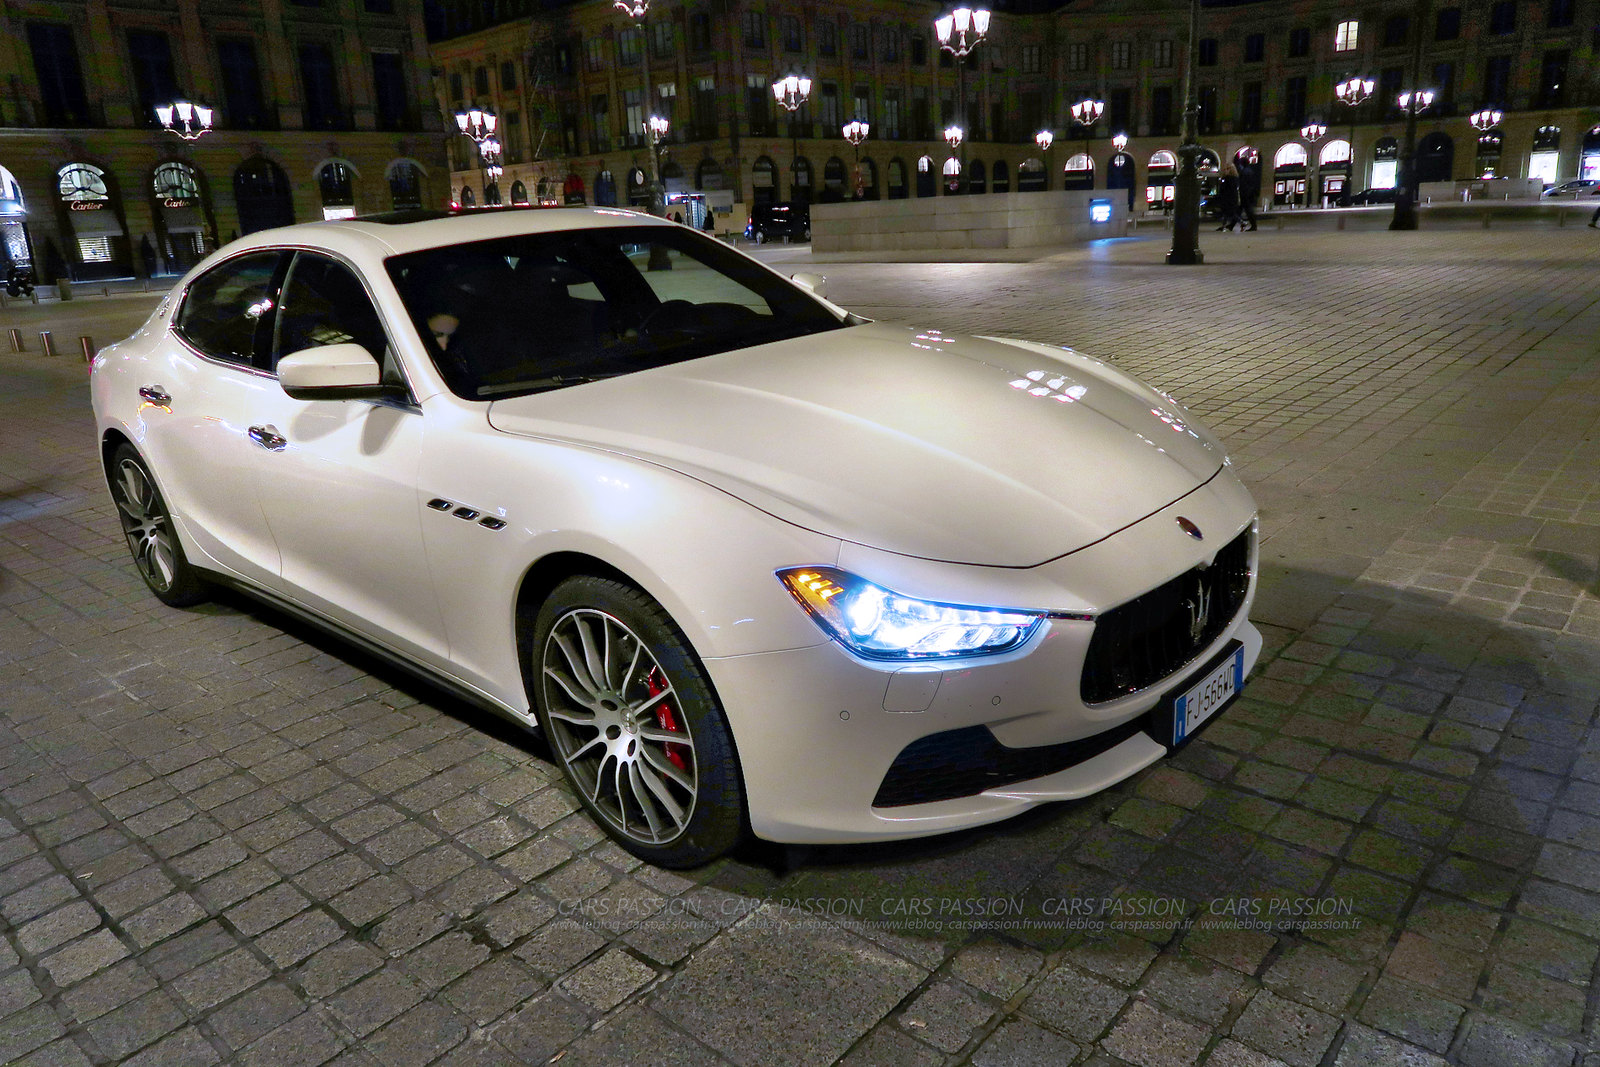 Maserati Ghibli SQ 4 essai Place Vendome Paris